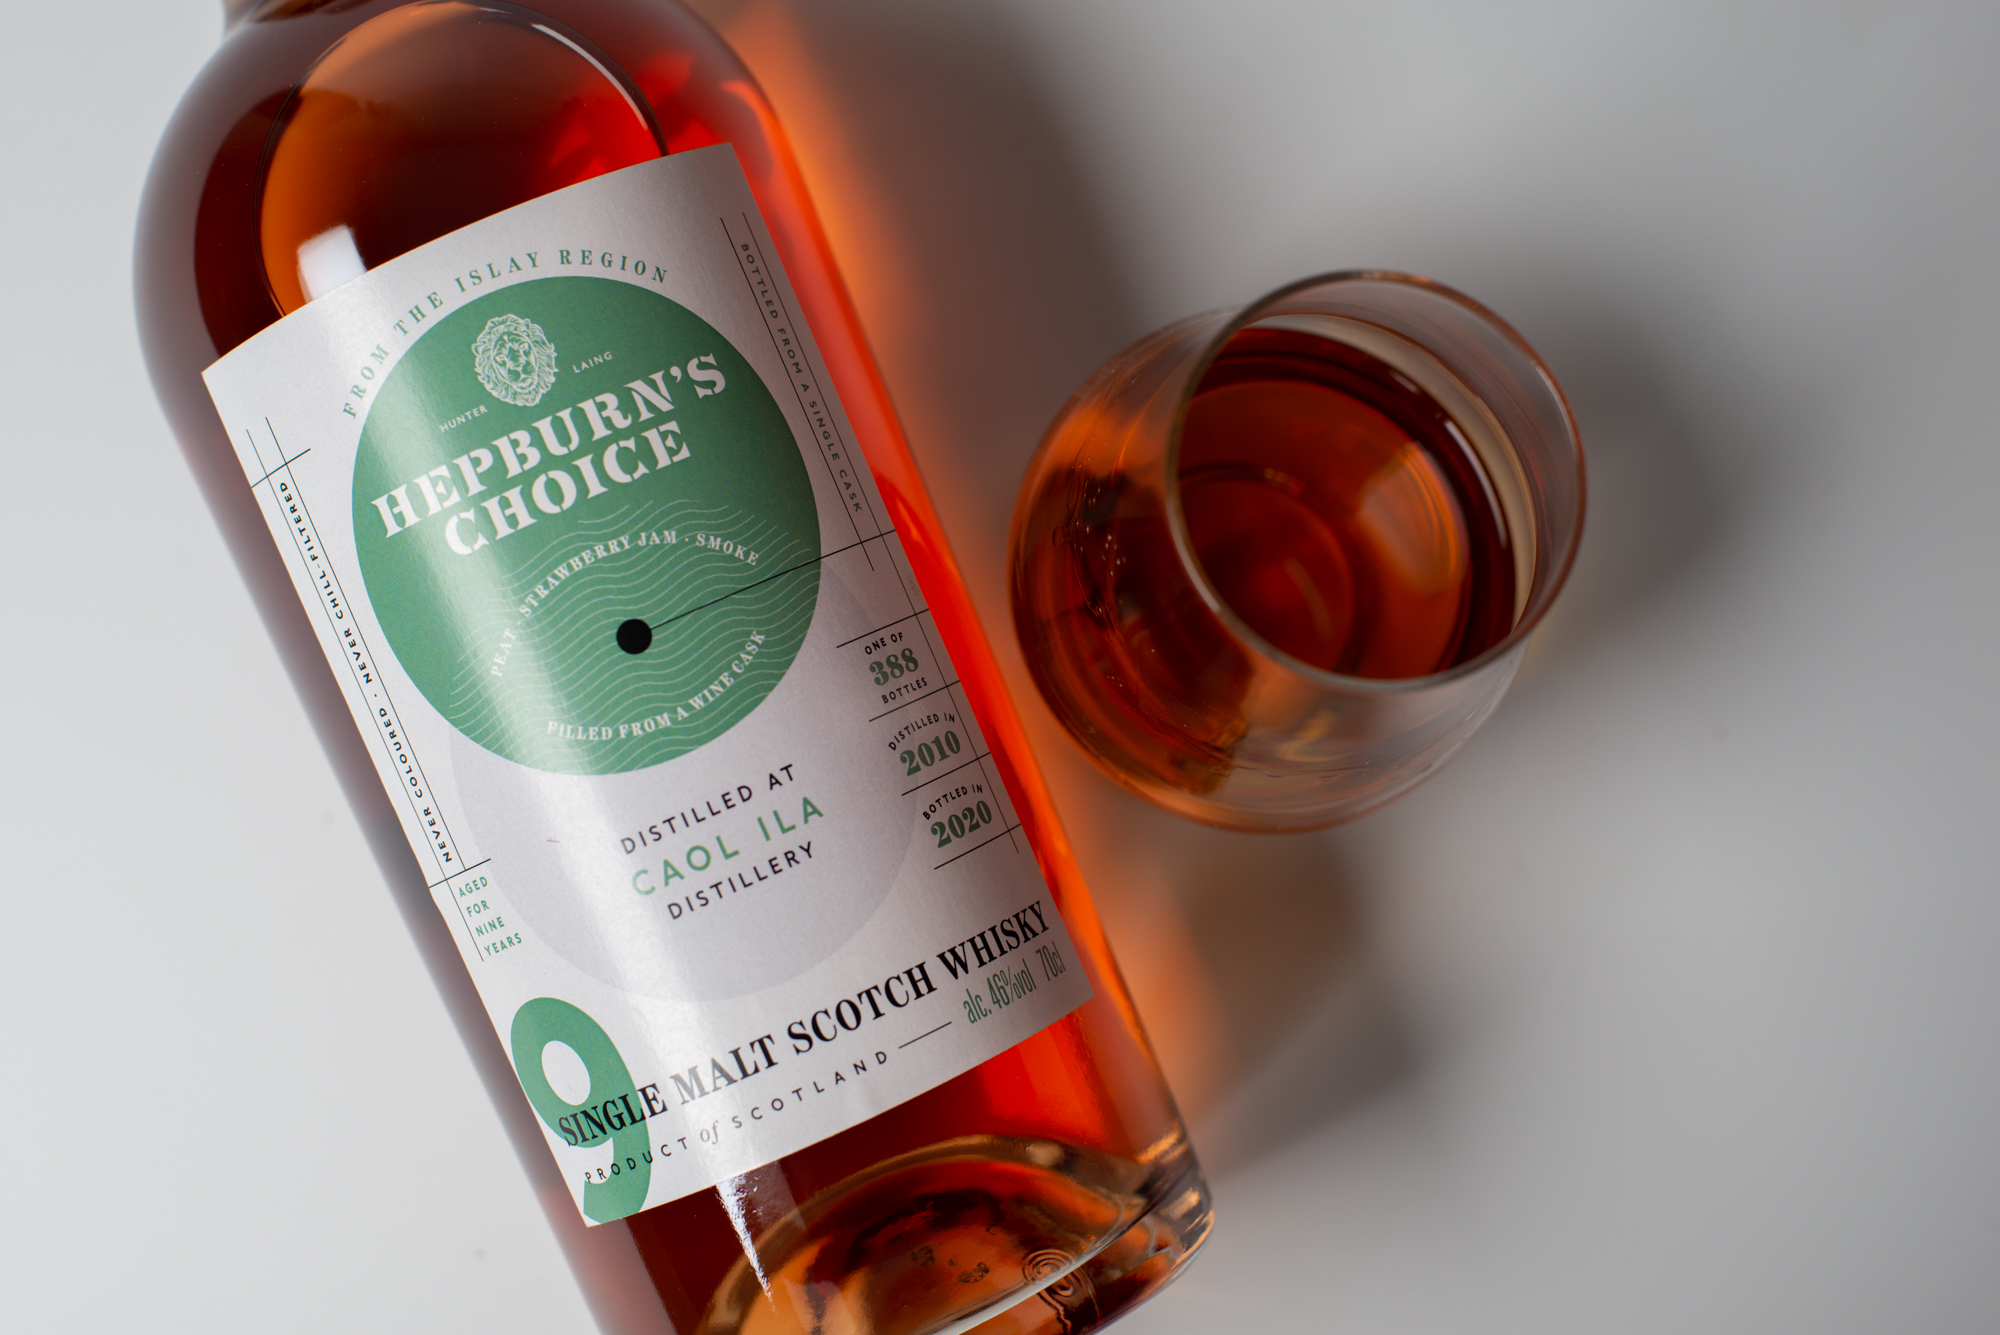 A bottle of Hepburn Whisky - Food and drink News Scotland